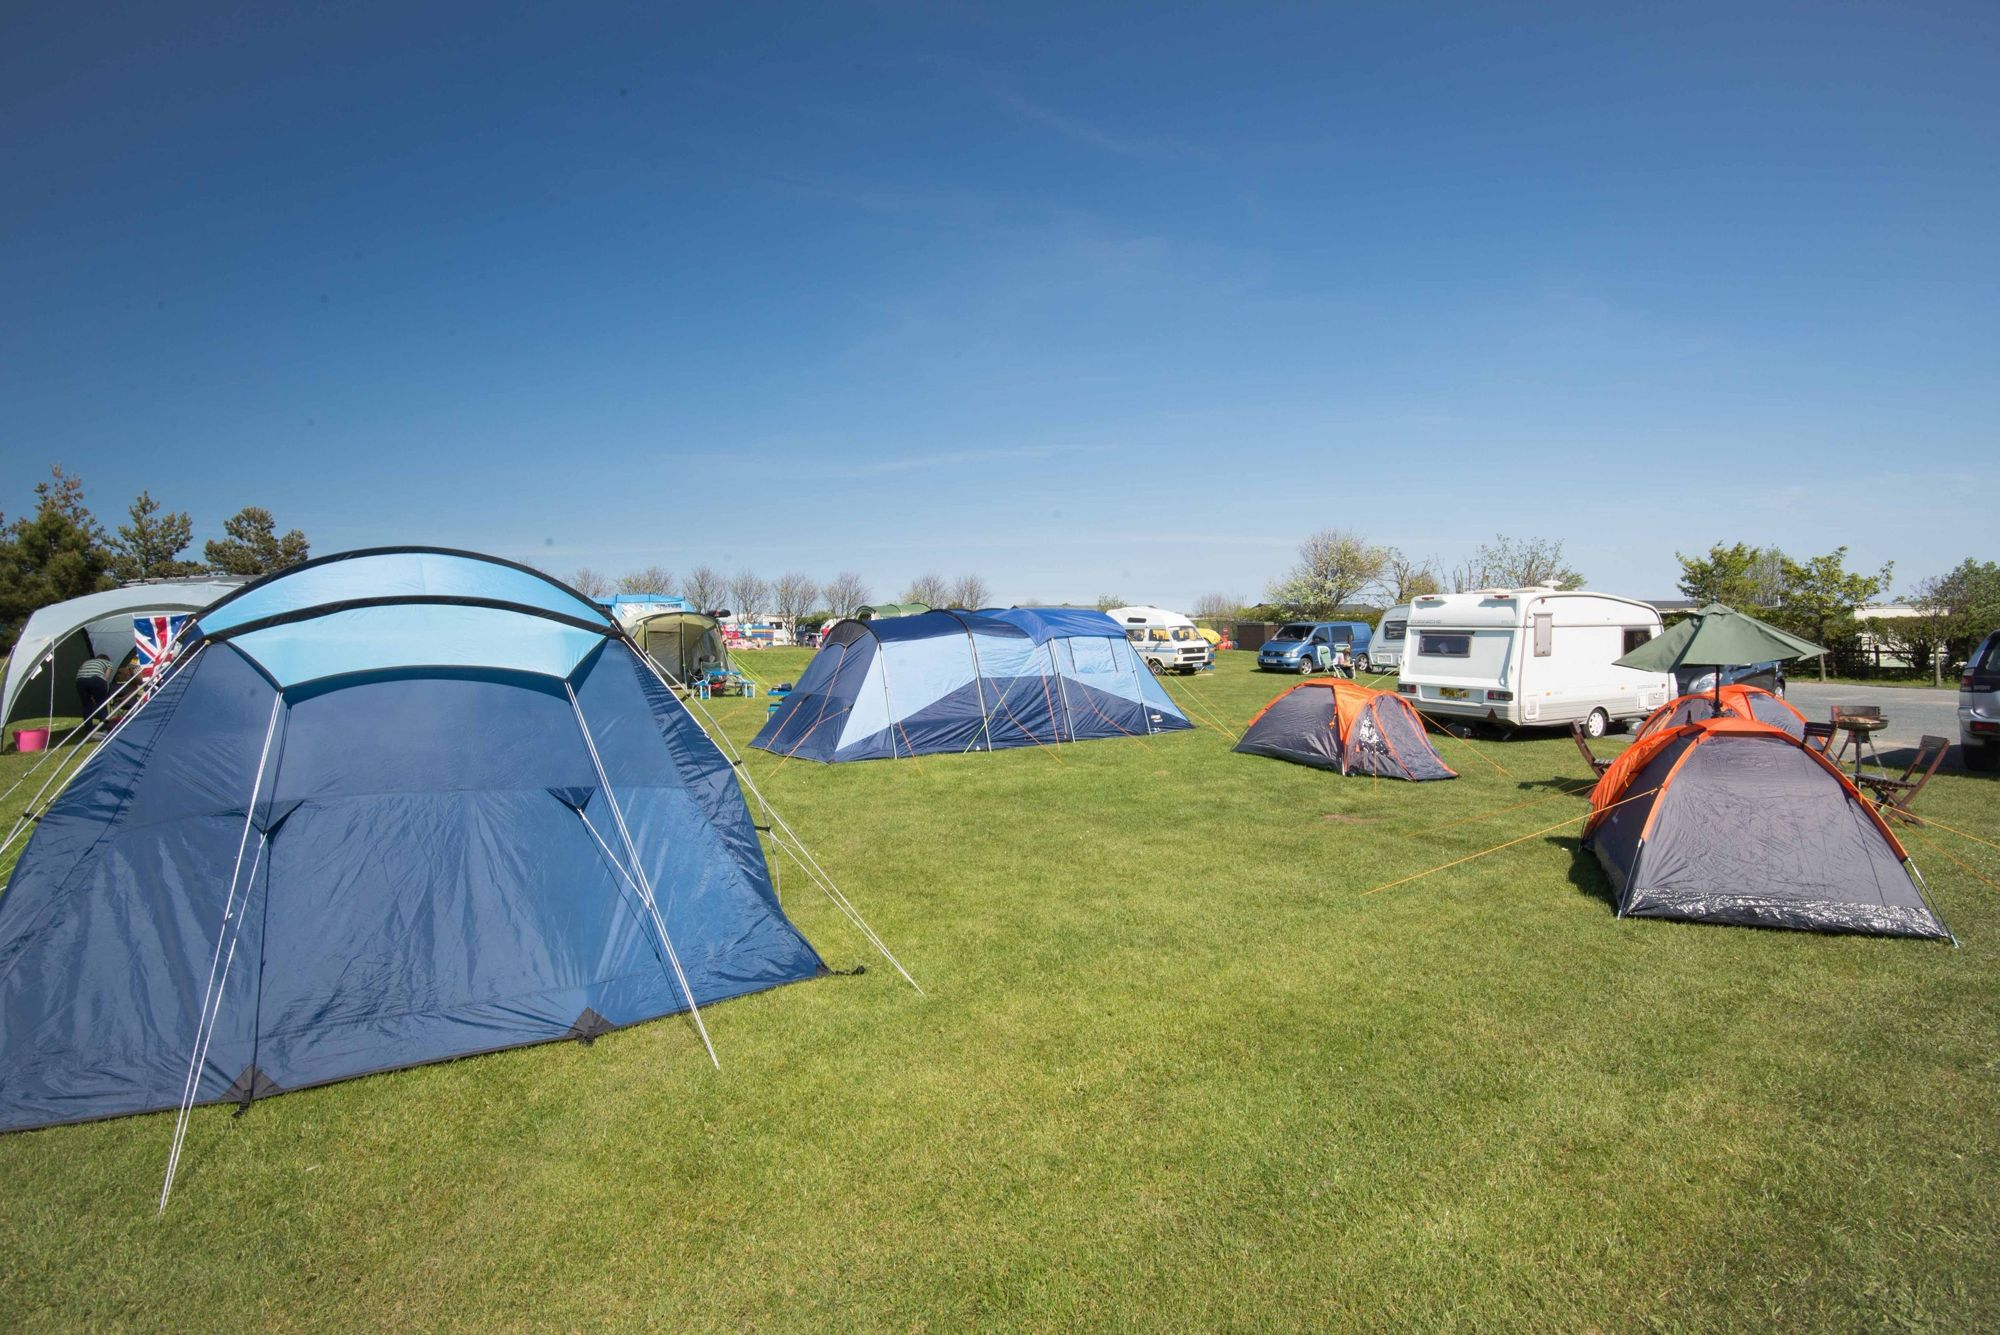 Campsites you can book online